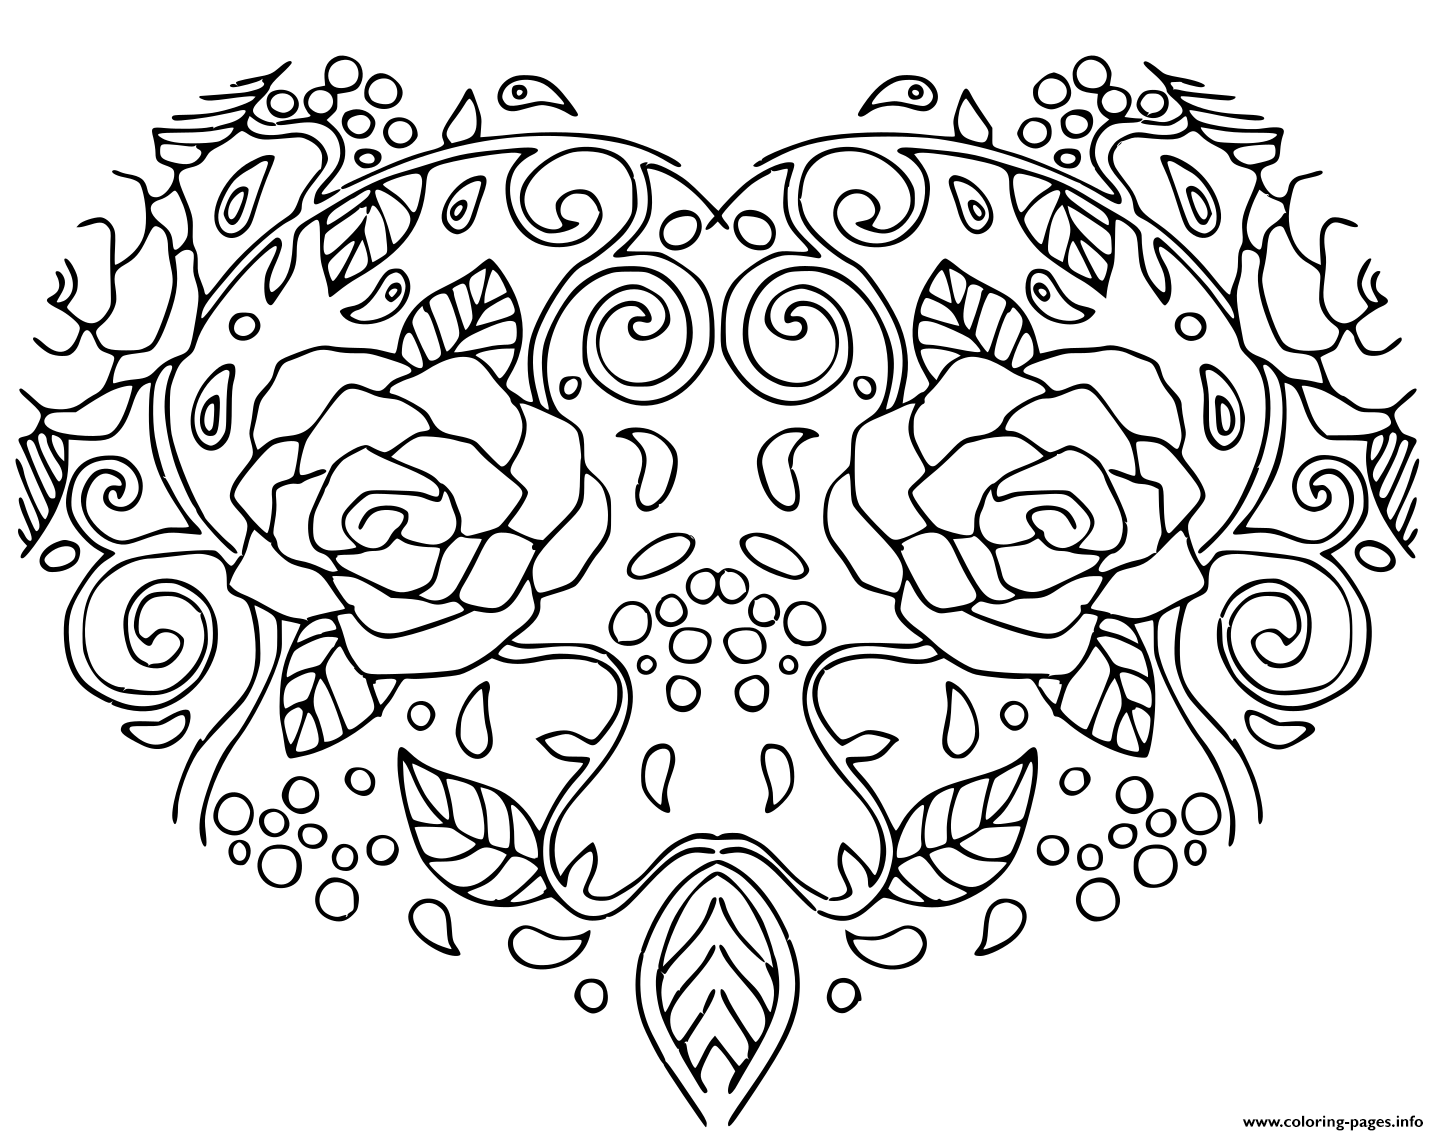 Decorative Love Heart With Flowers Valentines Day Card For Adult And Children coloring pages